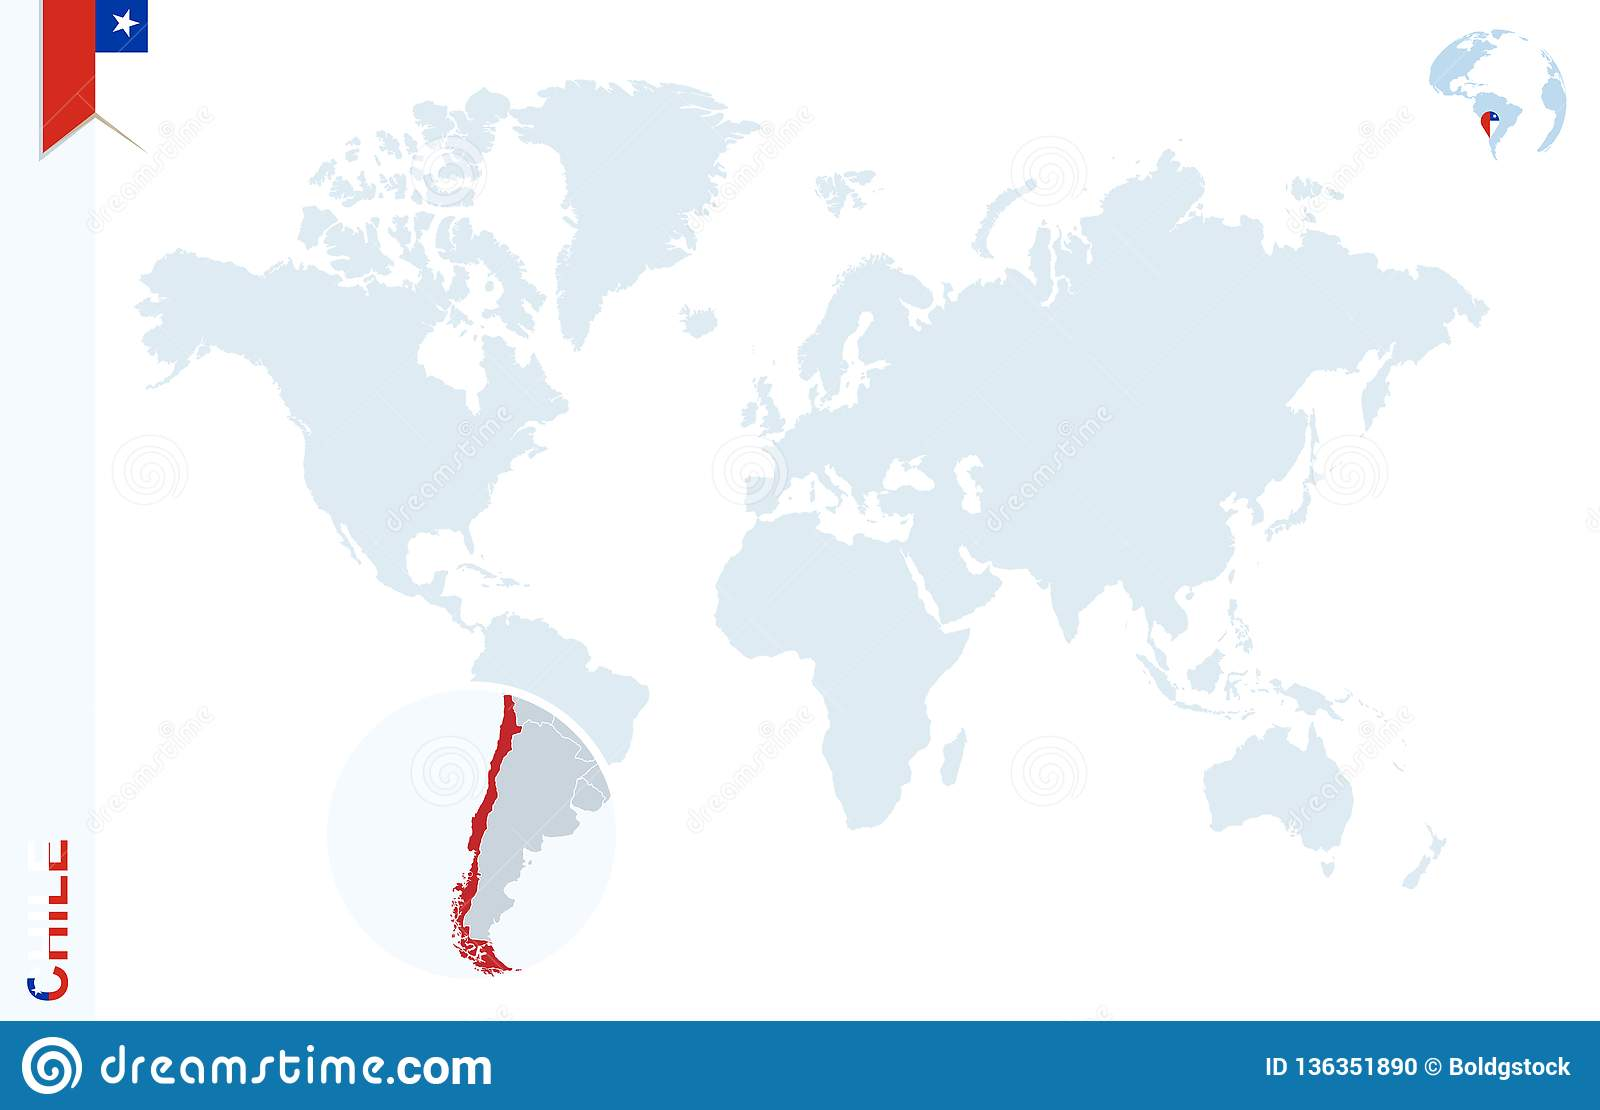 Blue World Map With Magnifying On Chile Stock Vector - Illustration on